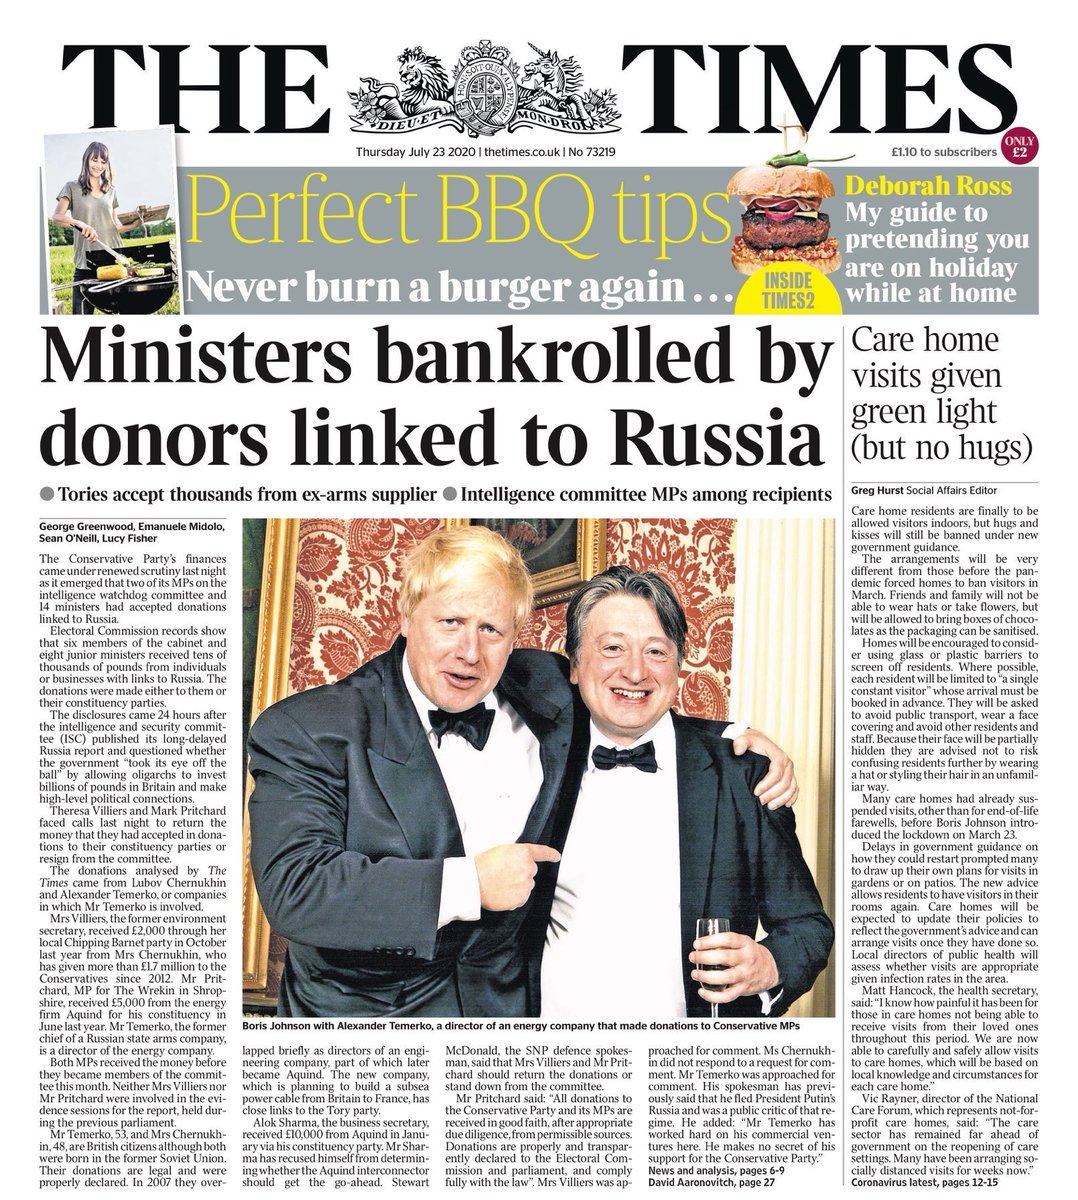 Sadly, nor is this government. We're in for 5 years of kleptocracy. These are the lessons (and the donations) Boris seems to have taken from his Russian friends.